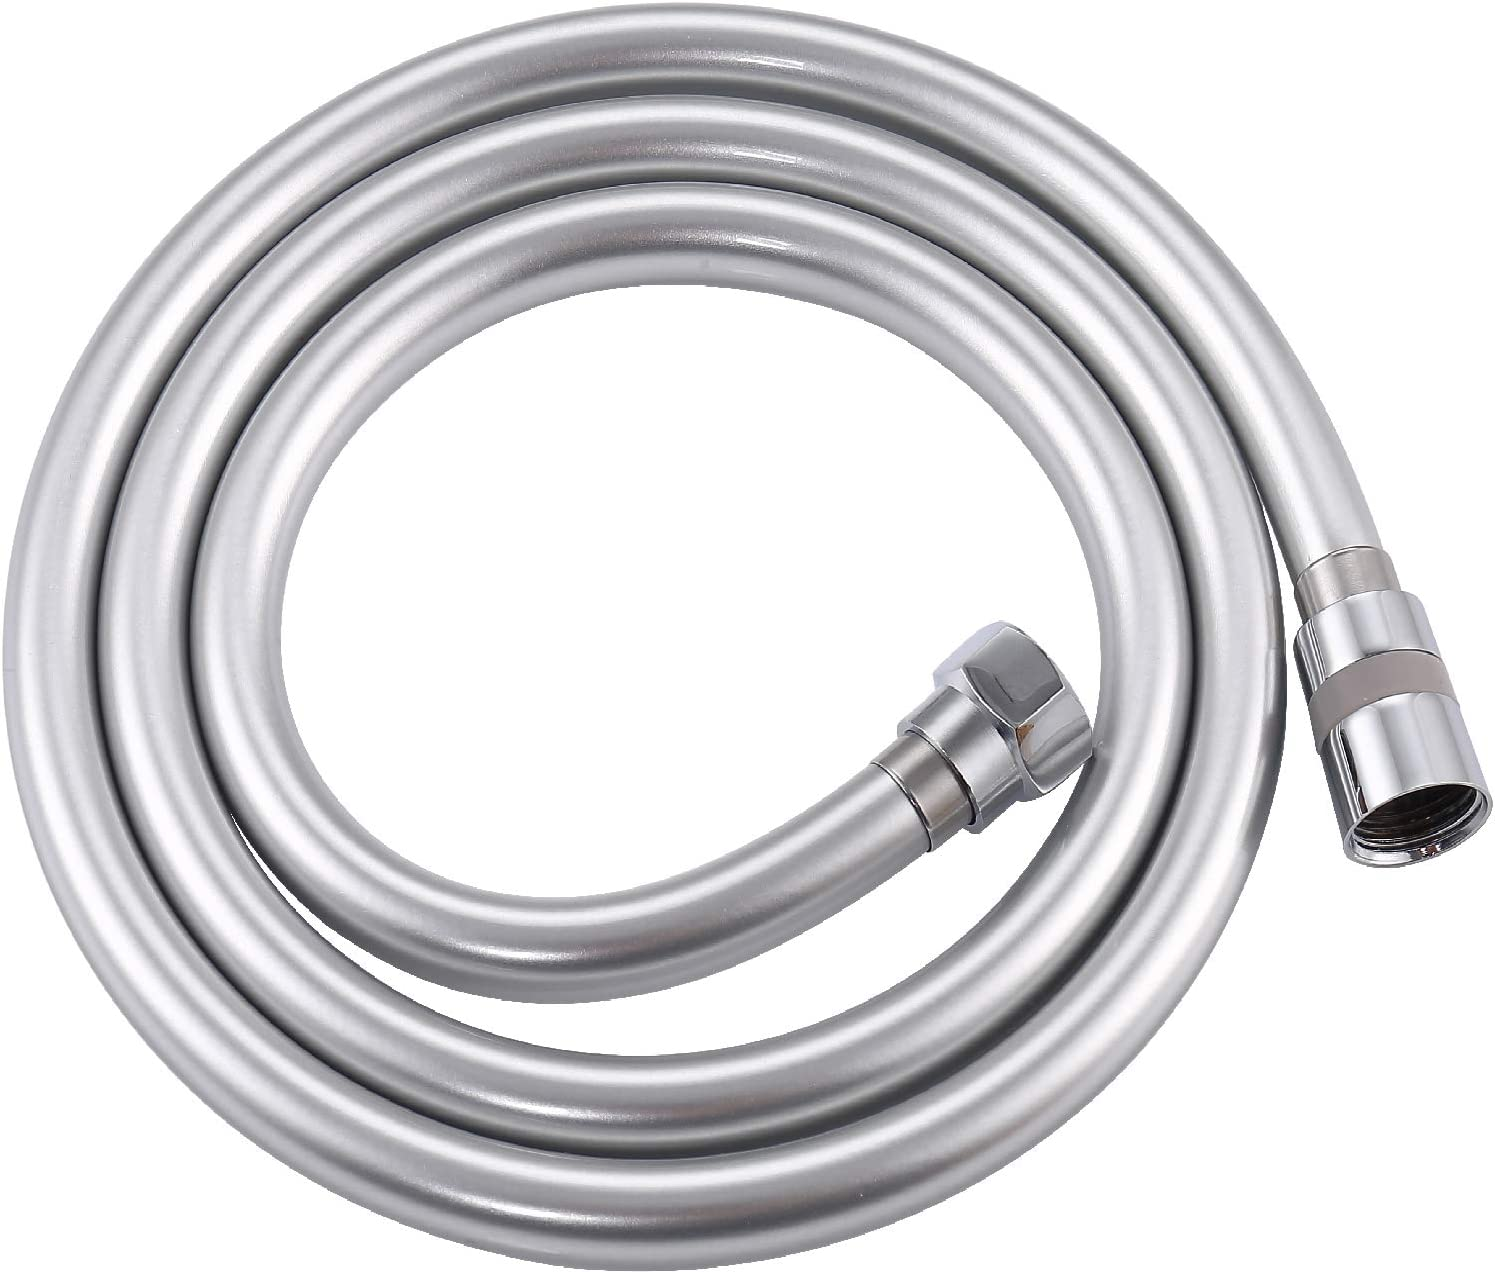 Krodo PVC Smooth Shower Hose 1.5M 59 Inch with Anti-Twist Brass Connections